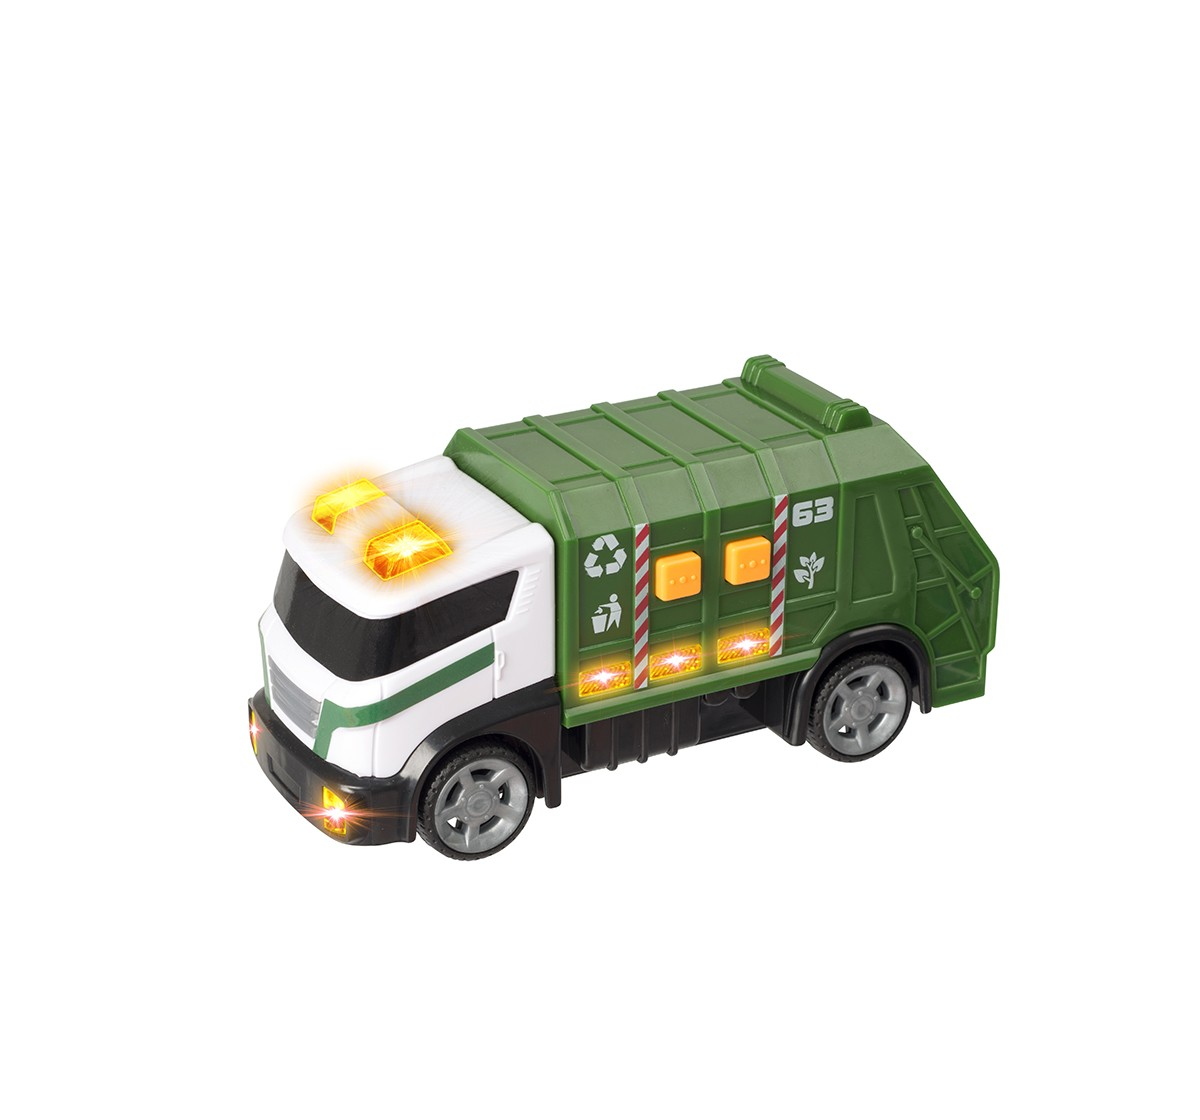 Ralleyz Light And Sound Garbage Truck Small Vehicles for Kids age 3Y+